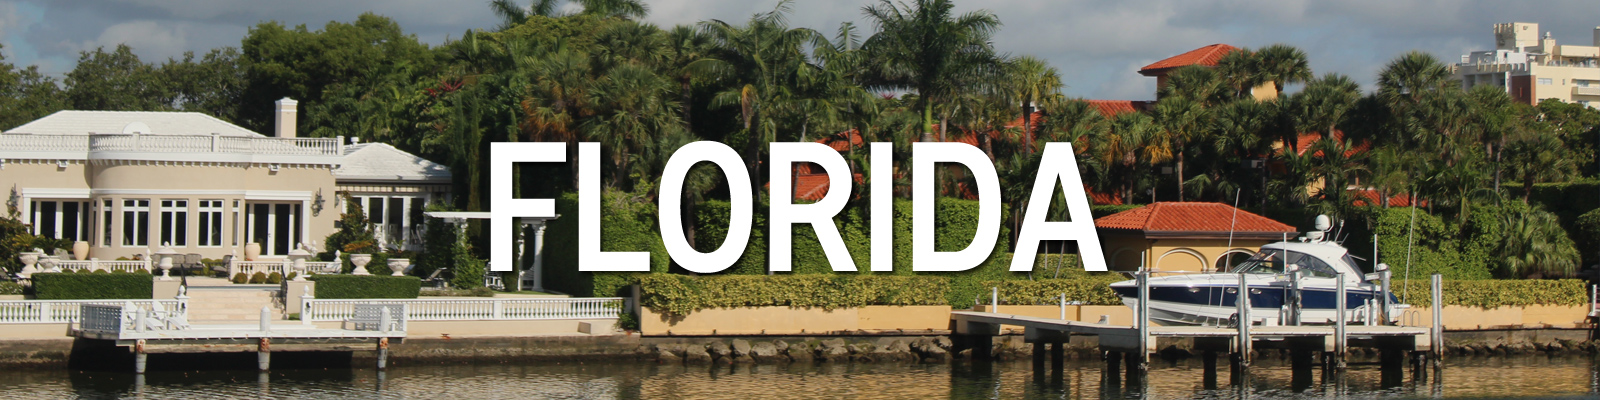 Florida Travel